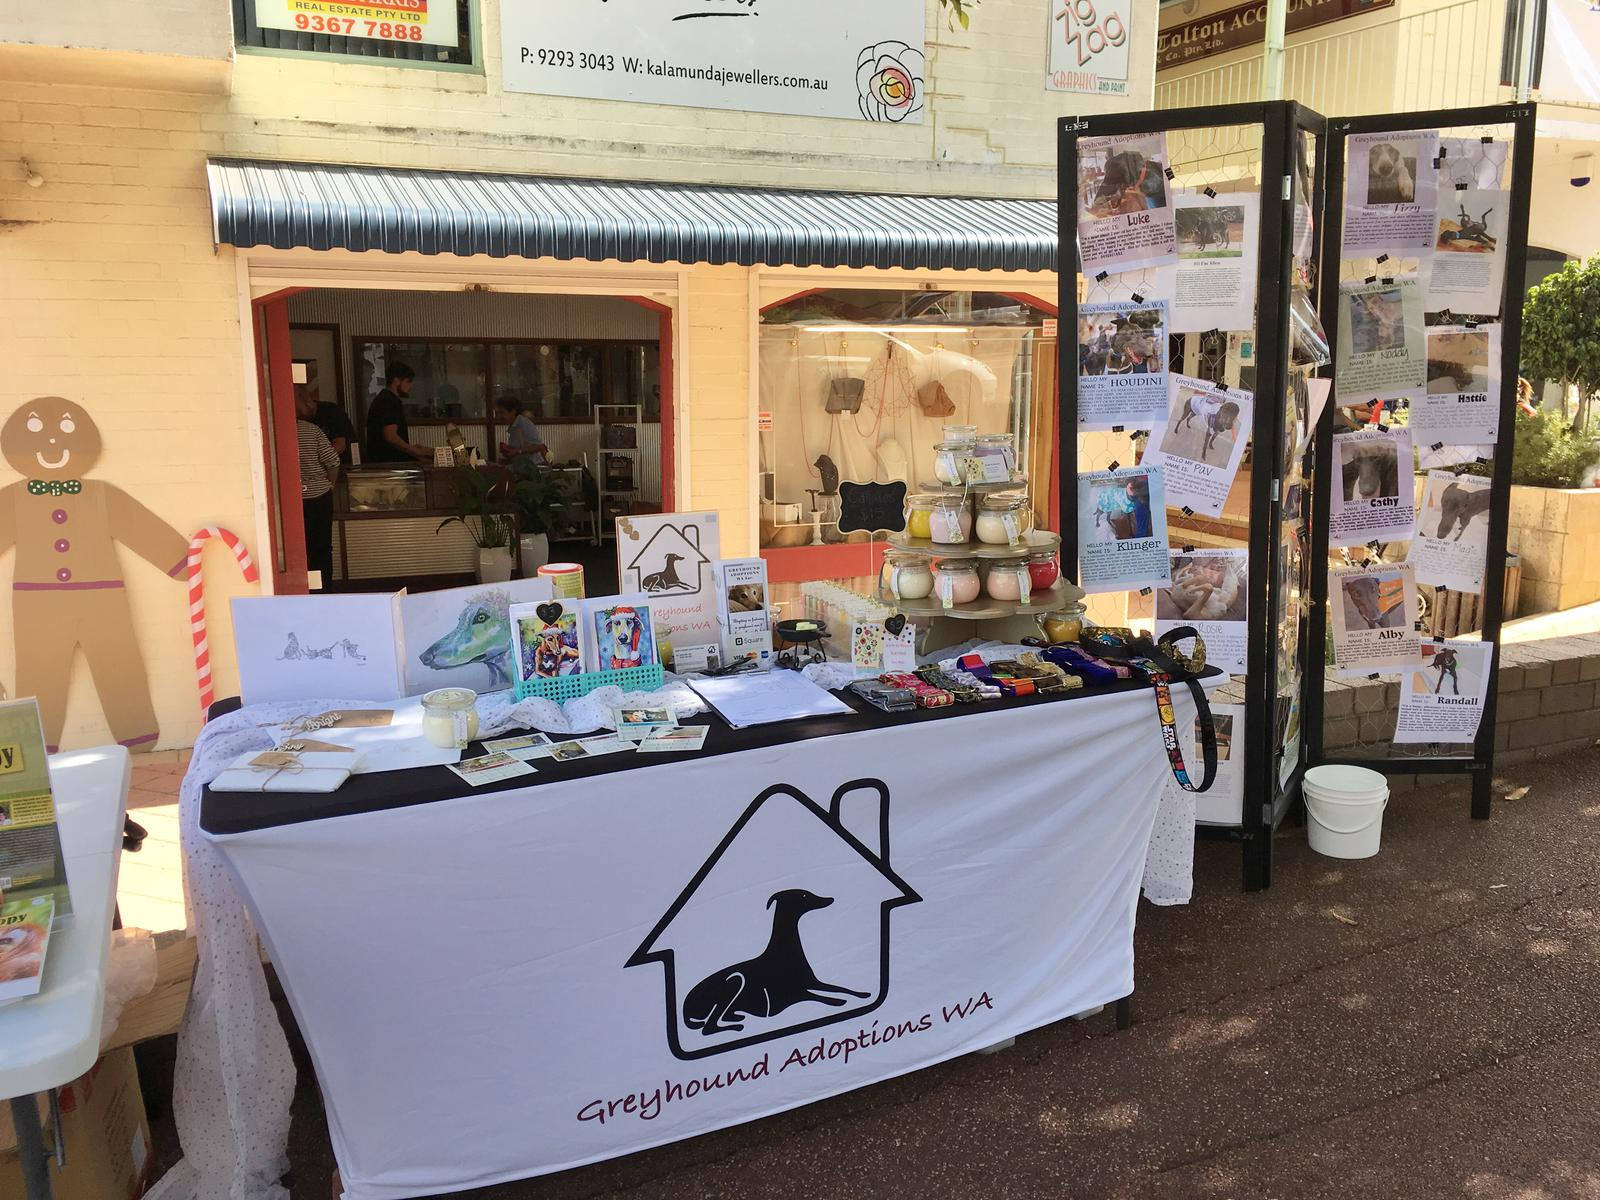 Greyhound Adoptions WA Stall 1